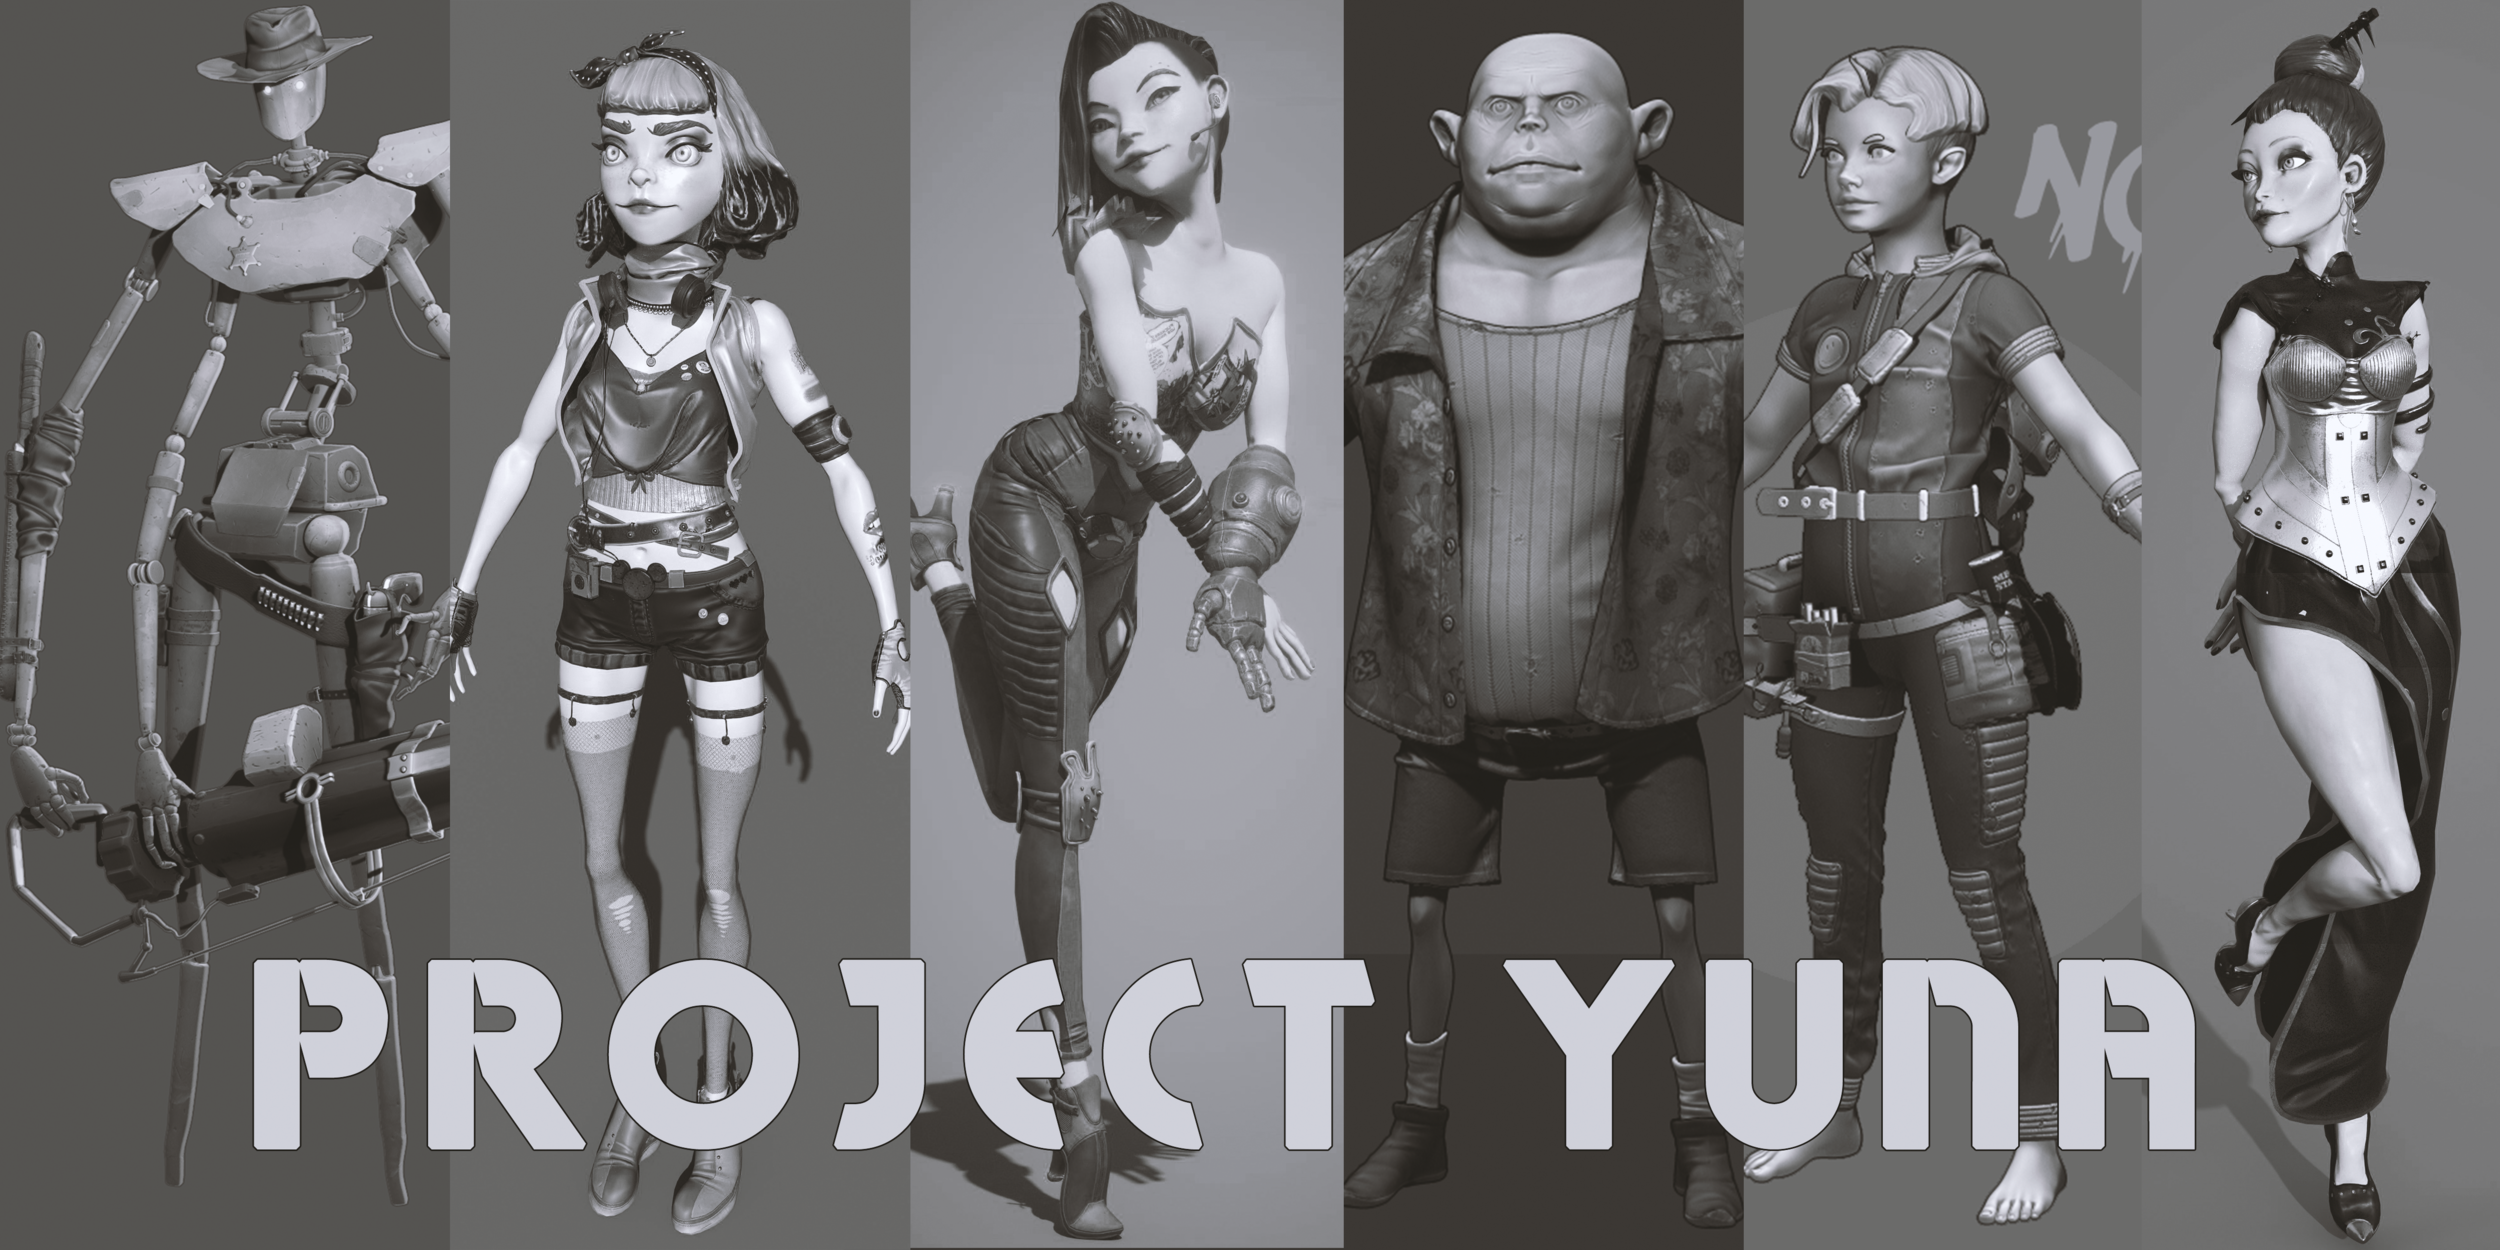 Our characters: Mike, Lana, Yumi, Junky Kong, Noot, and Lady Mae